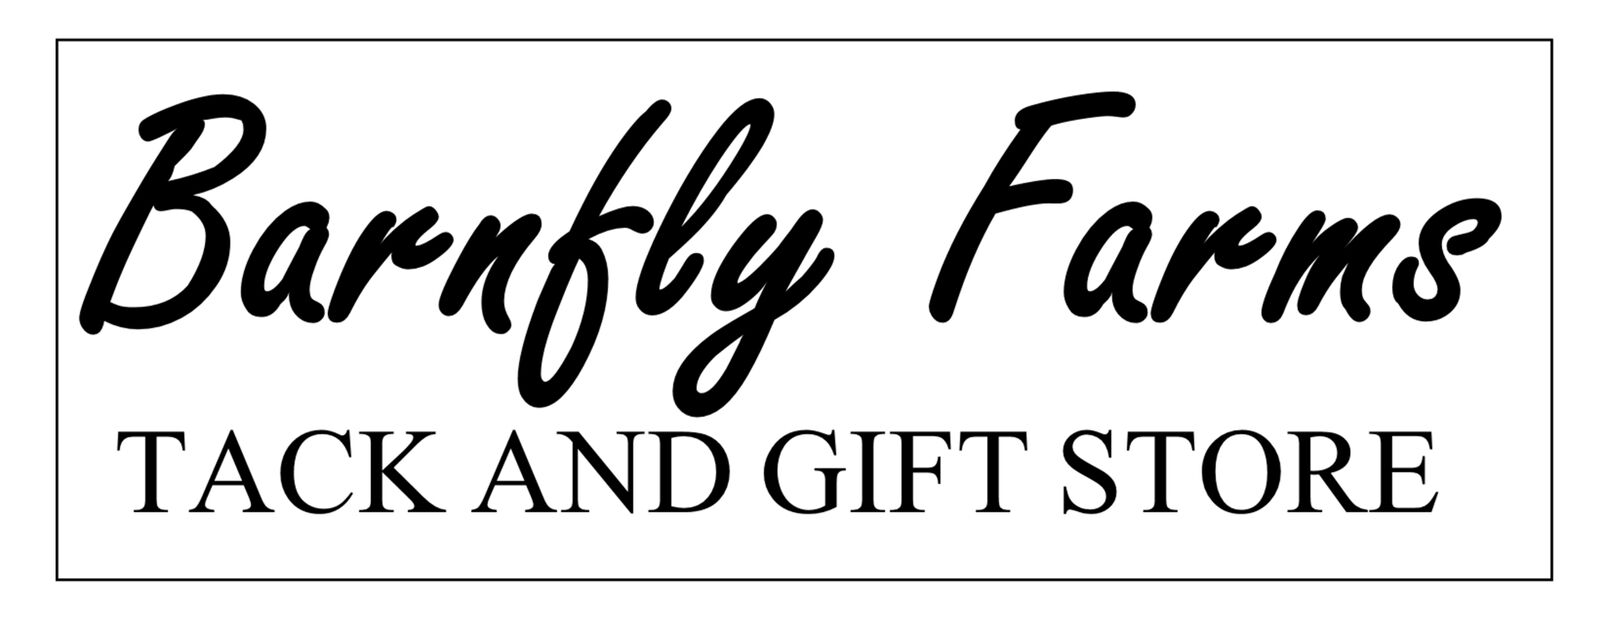 Barnfly Farms - Tack and Gift Store